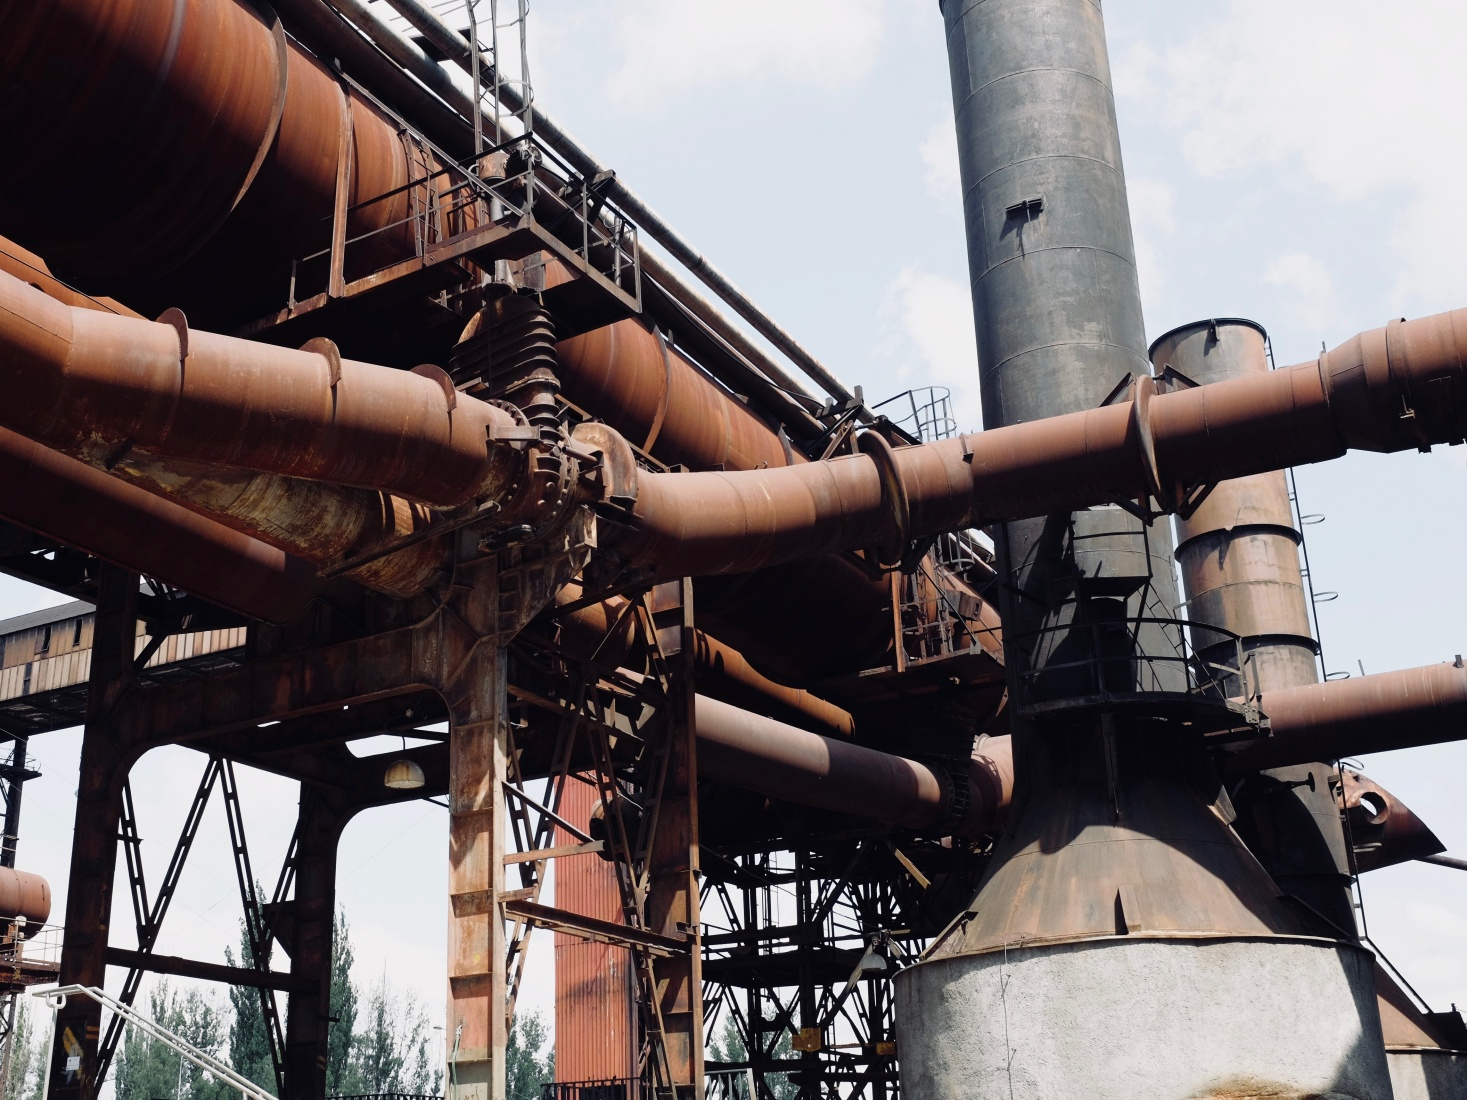 Close up on the pipes of Dolni Vitkovice steelworks, outside the main door to the Gong conference center, in Ostrava, Czech Republic.